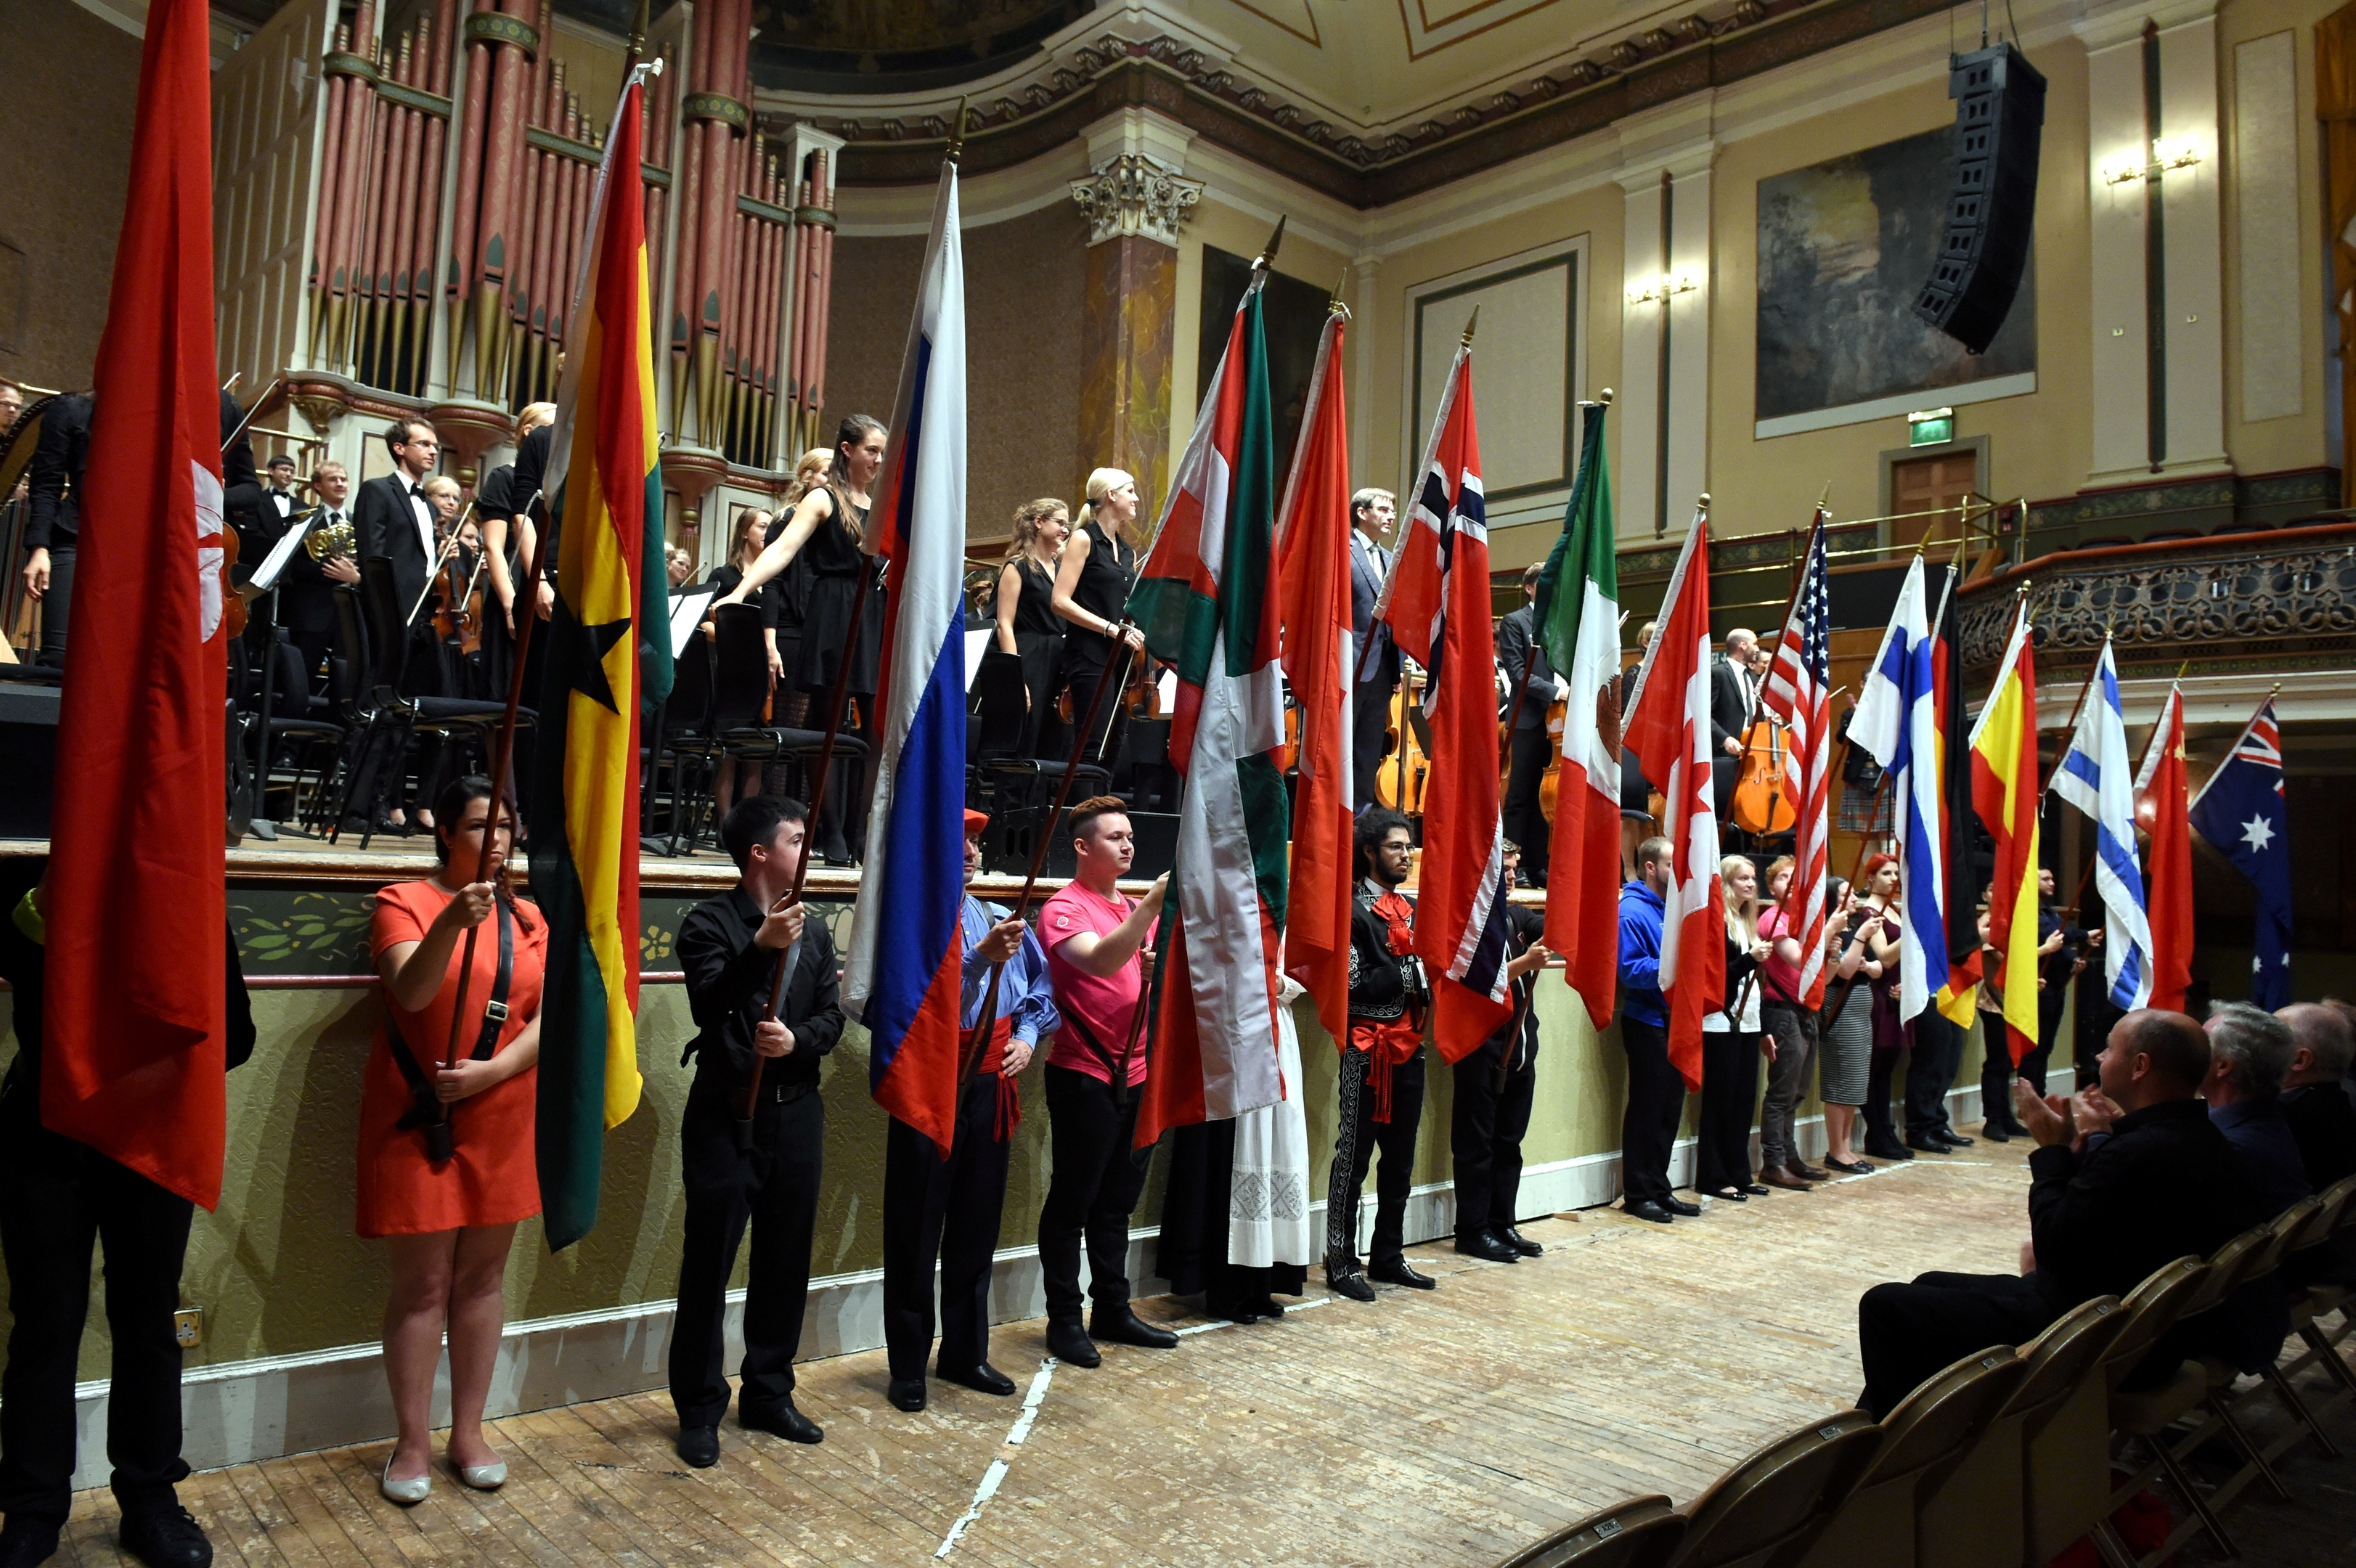 The Aberdeen International Youth Festival opening ceremony at Music Hall, Aberdeen in 2015